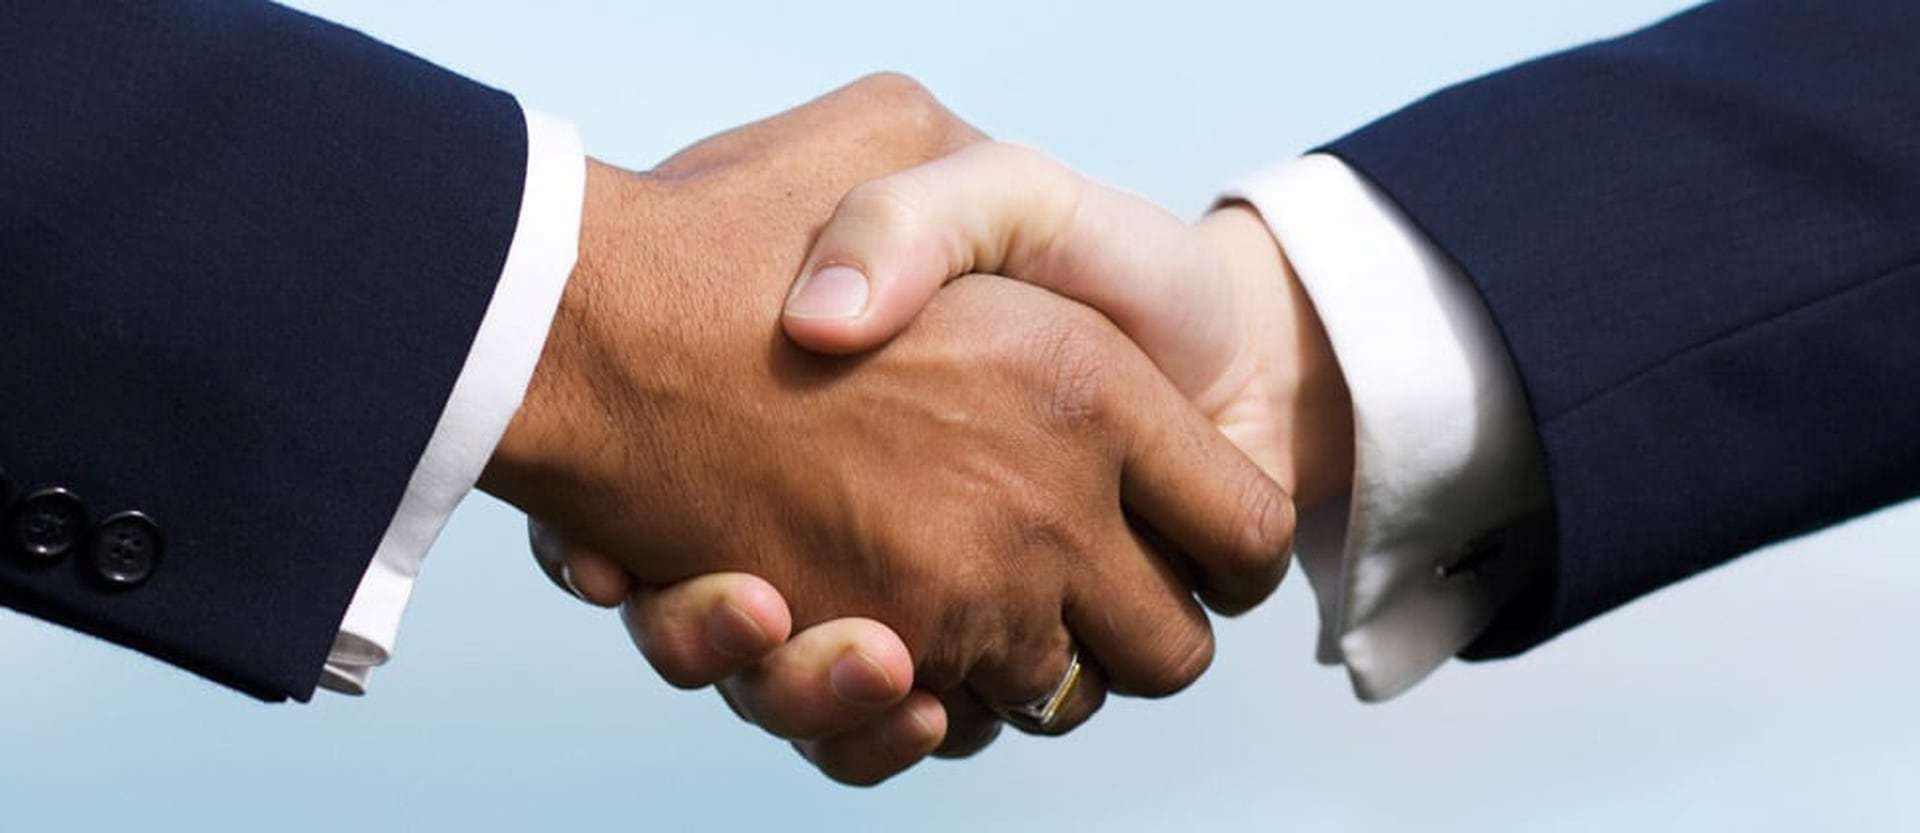 Handshake after Legal Settlement